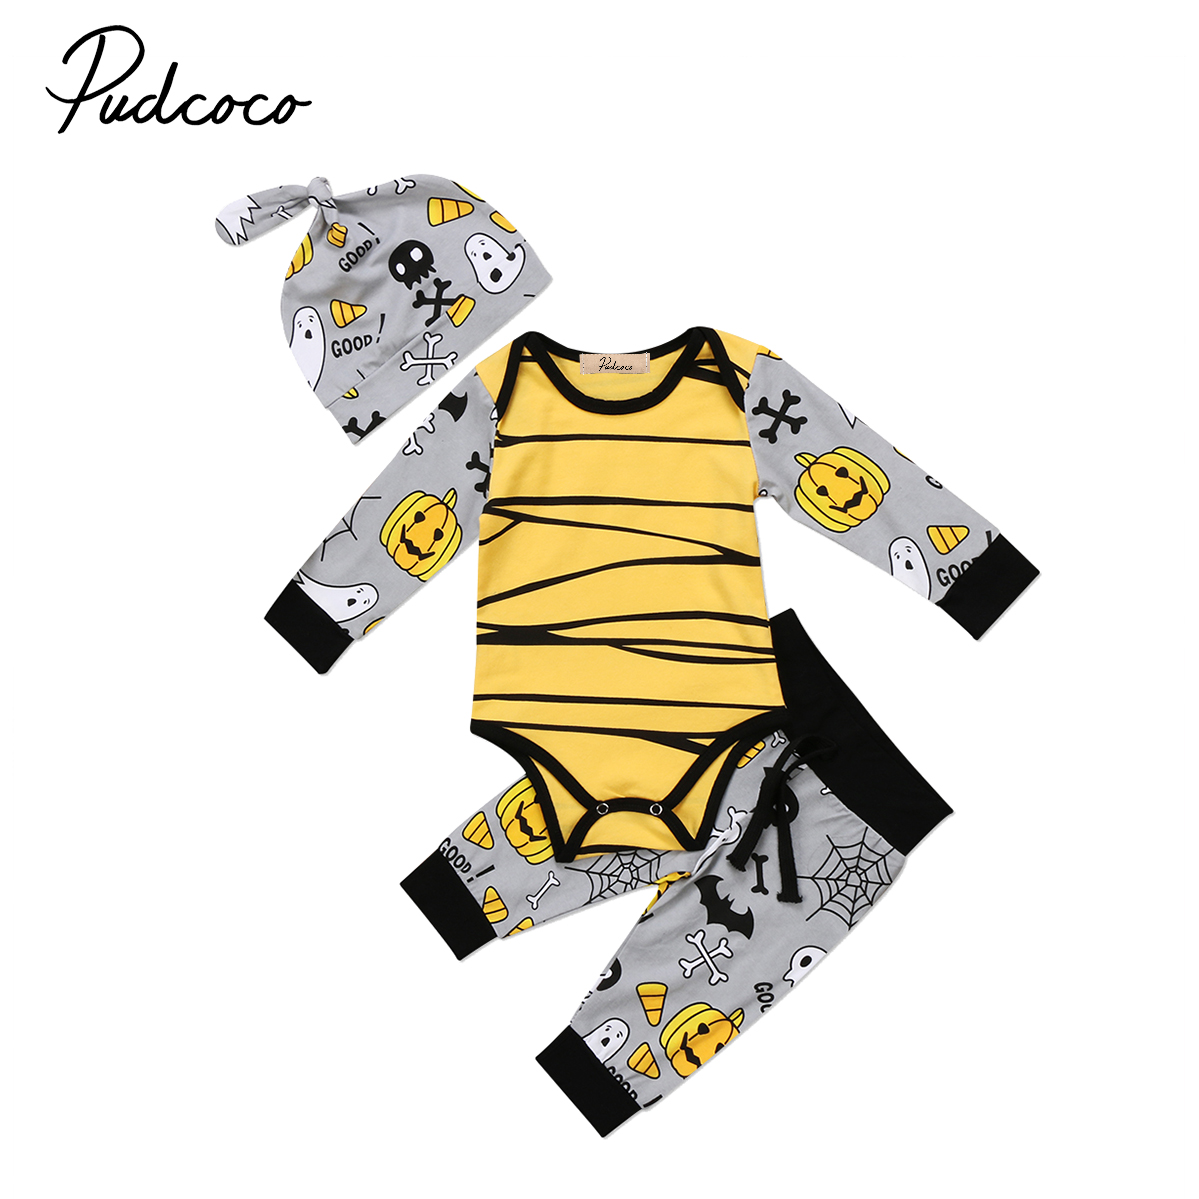 Pudcoco 2017 Cute Baby Boys Girls Halloween Clothes Pumpkin Stripes Long Sleeve Romper Tops Pants Hat Outfits Set Winter Clothes